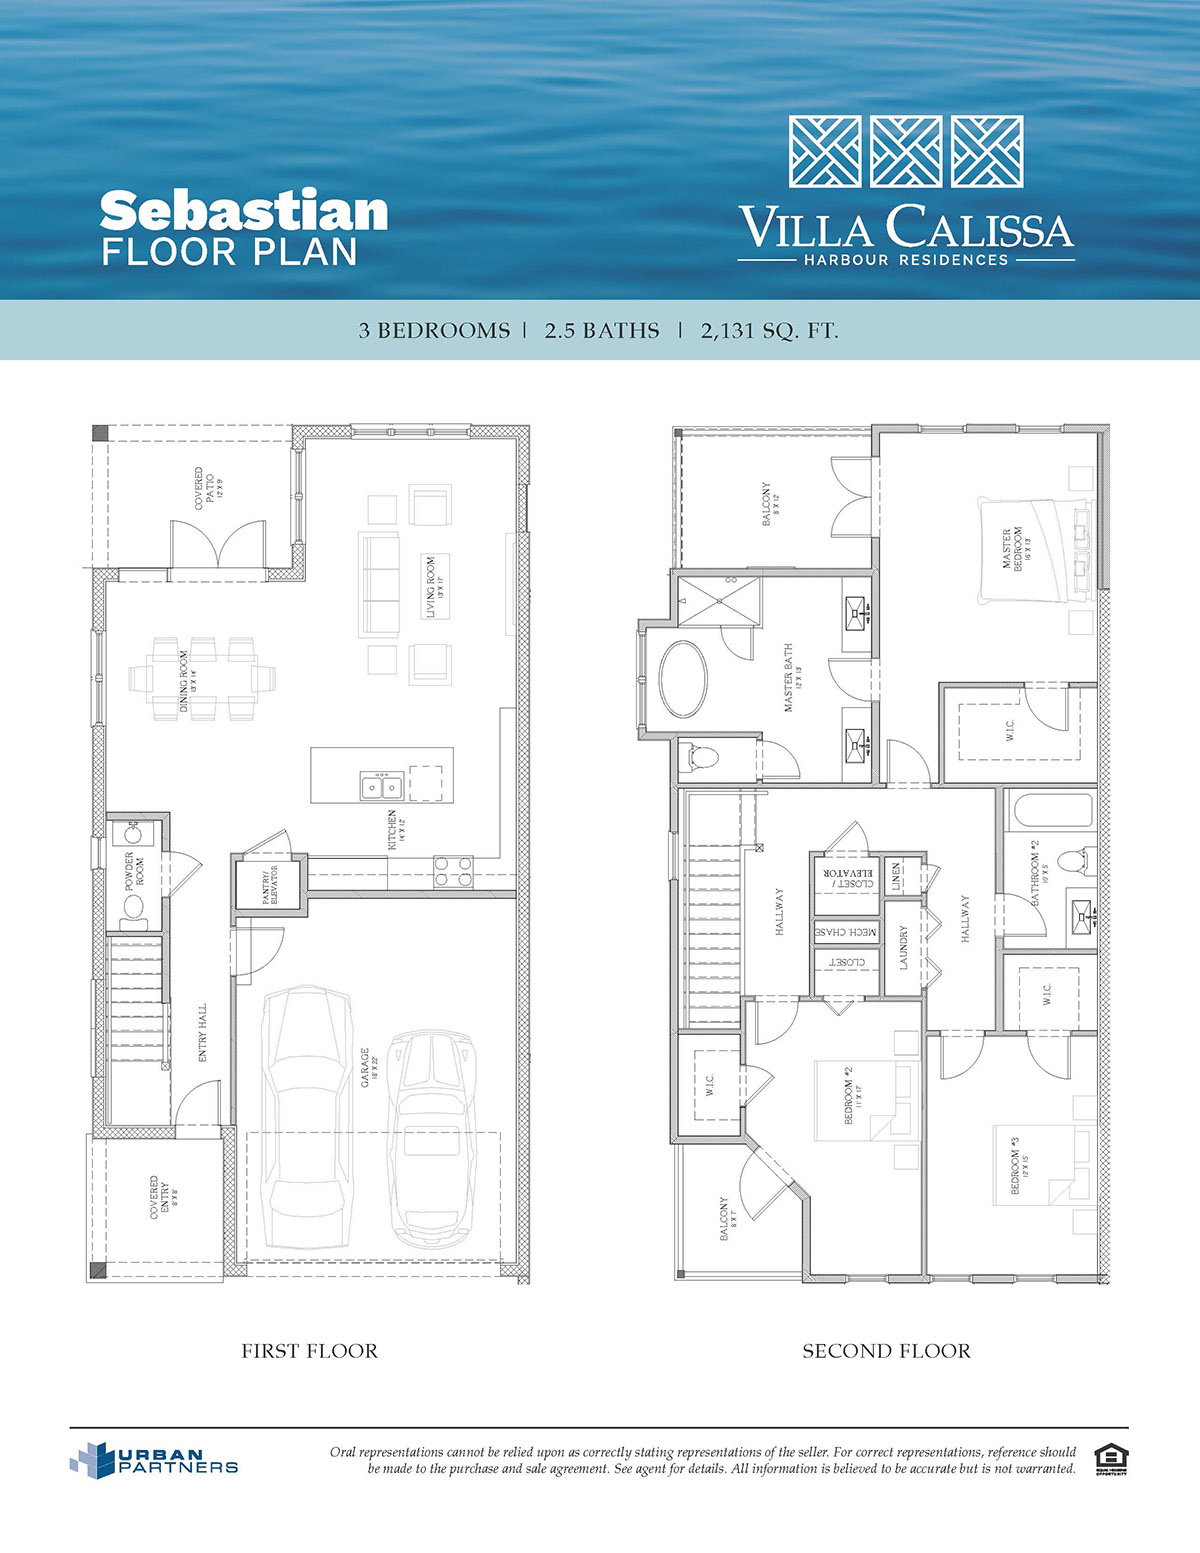 Sebastian floorplan at Villa Calissa